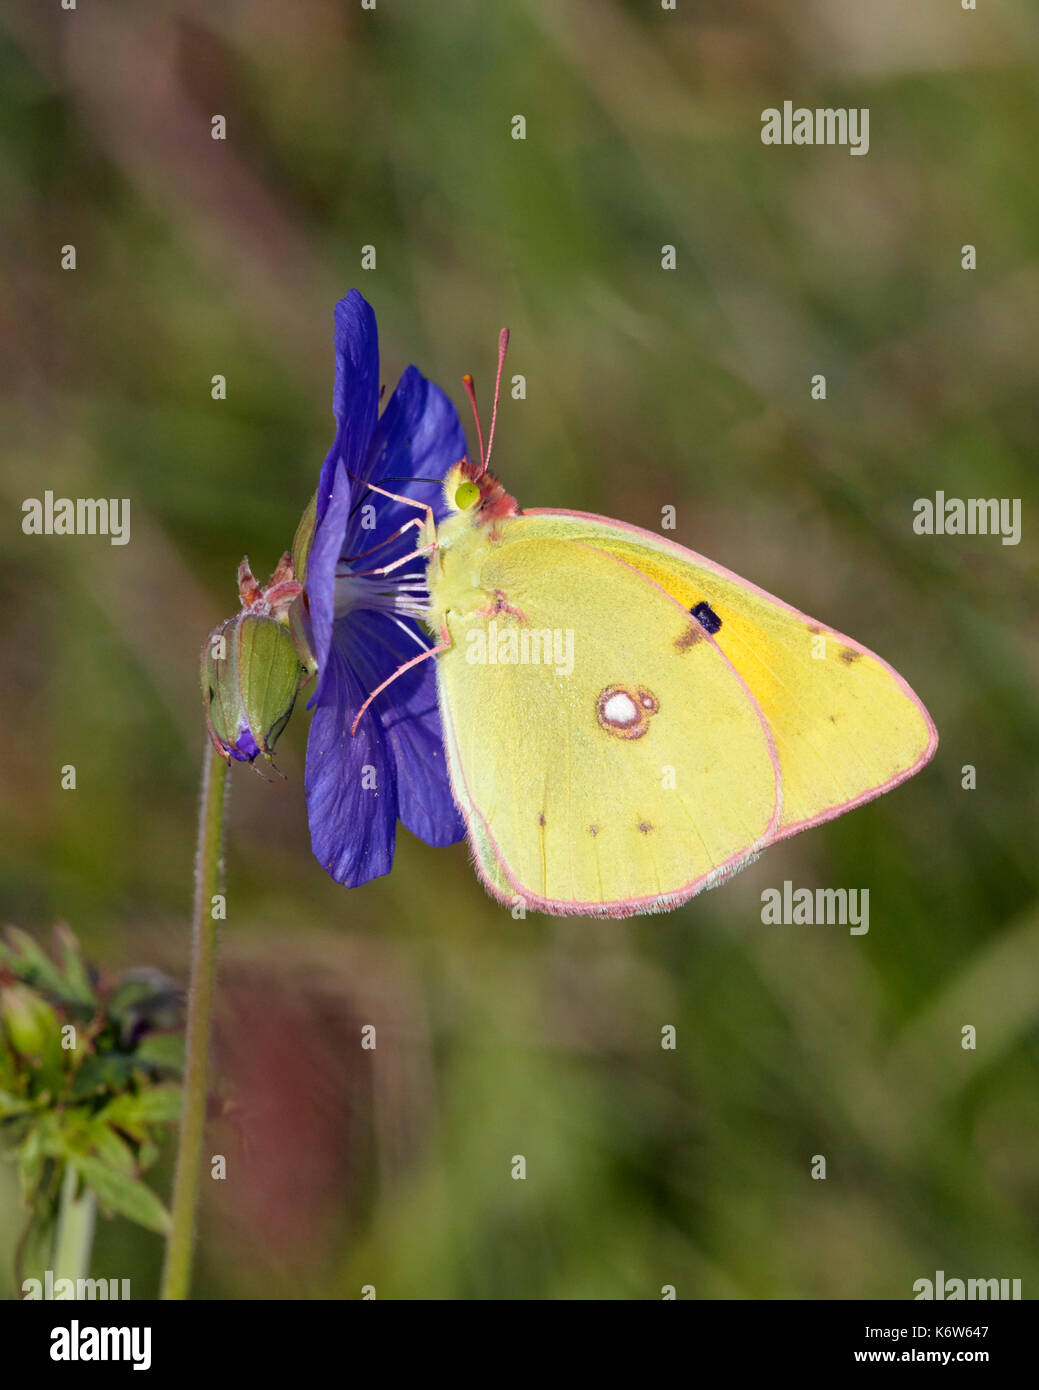 Clouded Yellow butterfly nectaring on Meadow Crane's-bill flower. Hurst Meadows, East Molesey, Surrey, UK. - Stock Image